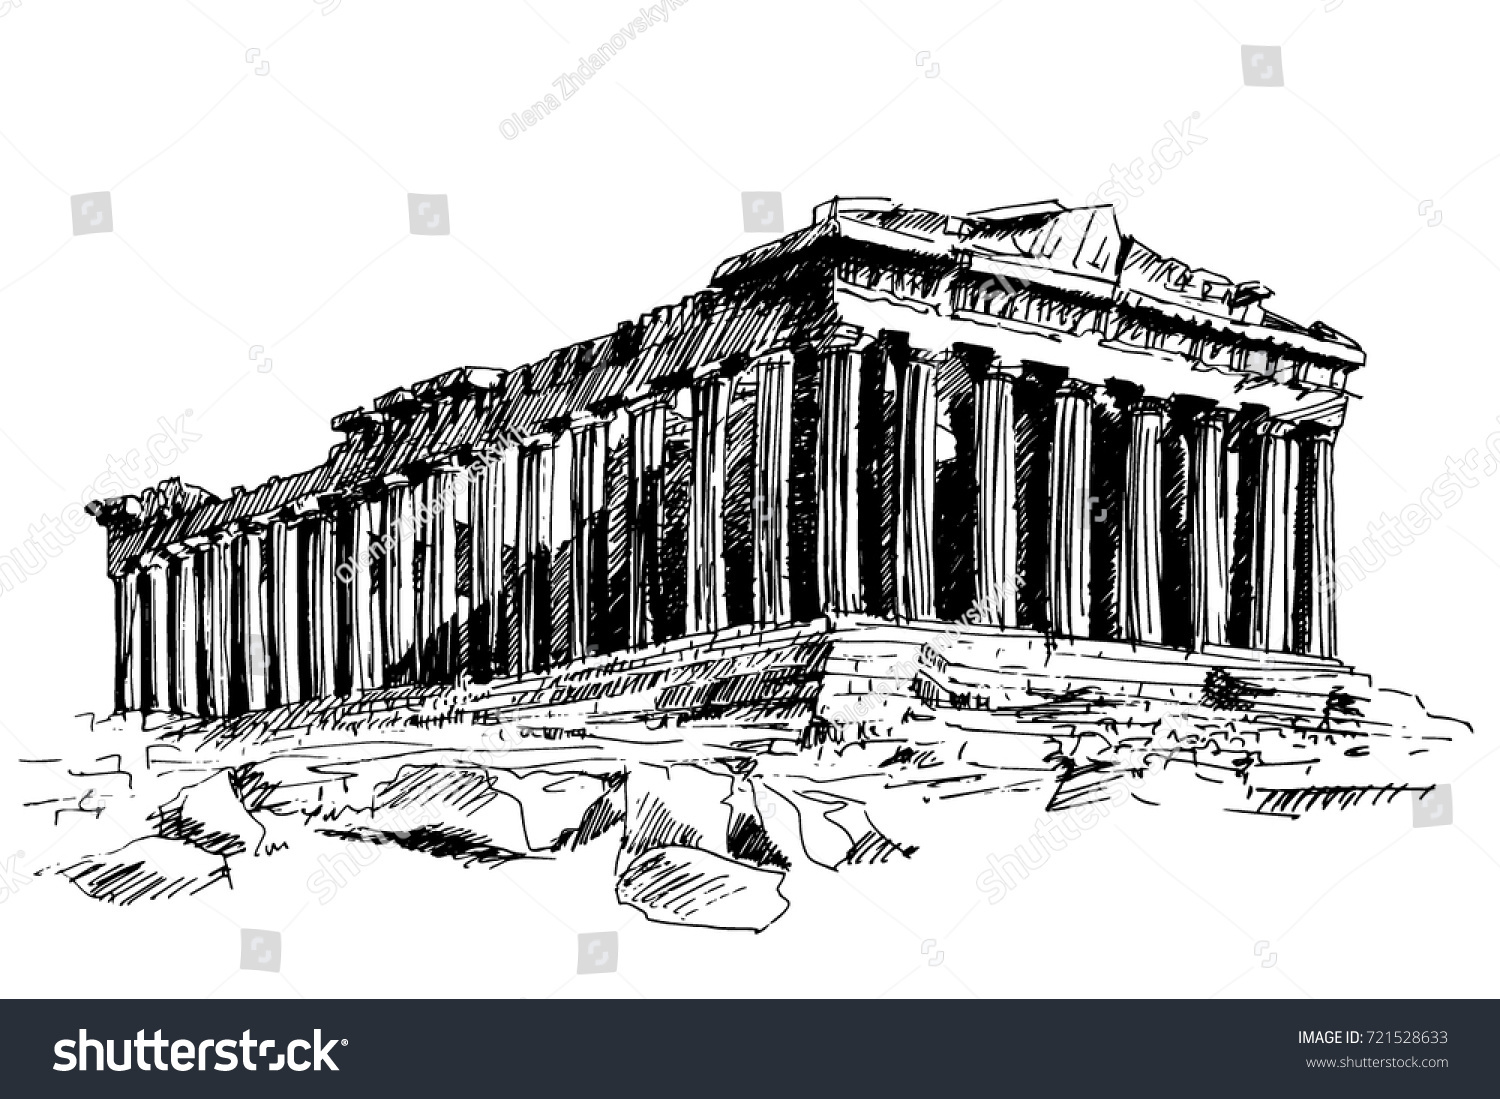 Hand Drawn Drawing Of The Famous Building Ancient Architecture In Athens Parthenon Greece